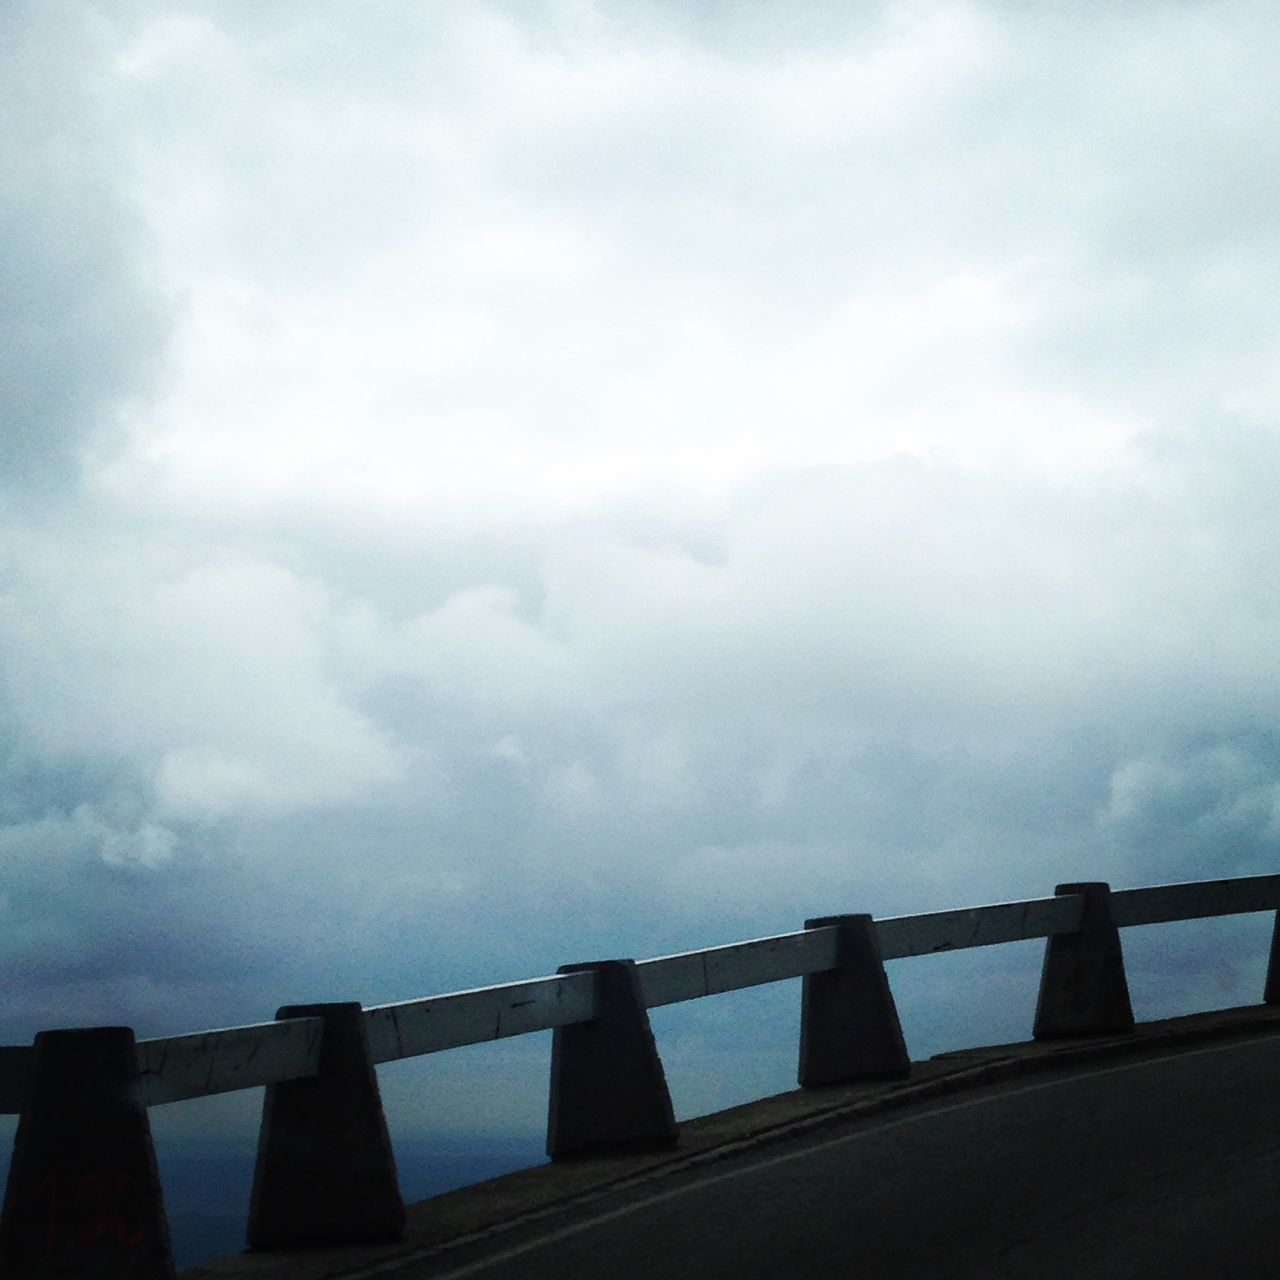 Architecture Border Borderline Borders Cloud - Sky Clouds Clouds And Sky Day Driving Edge Edge Of The World Fear Fearless Mountain No People Outdoors Road Road To Nowhere Roadtrip Scenics Serpentine Sky Street Up Way